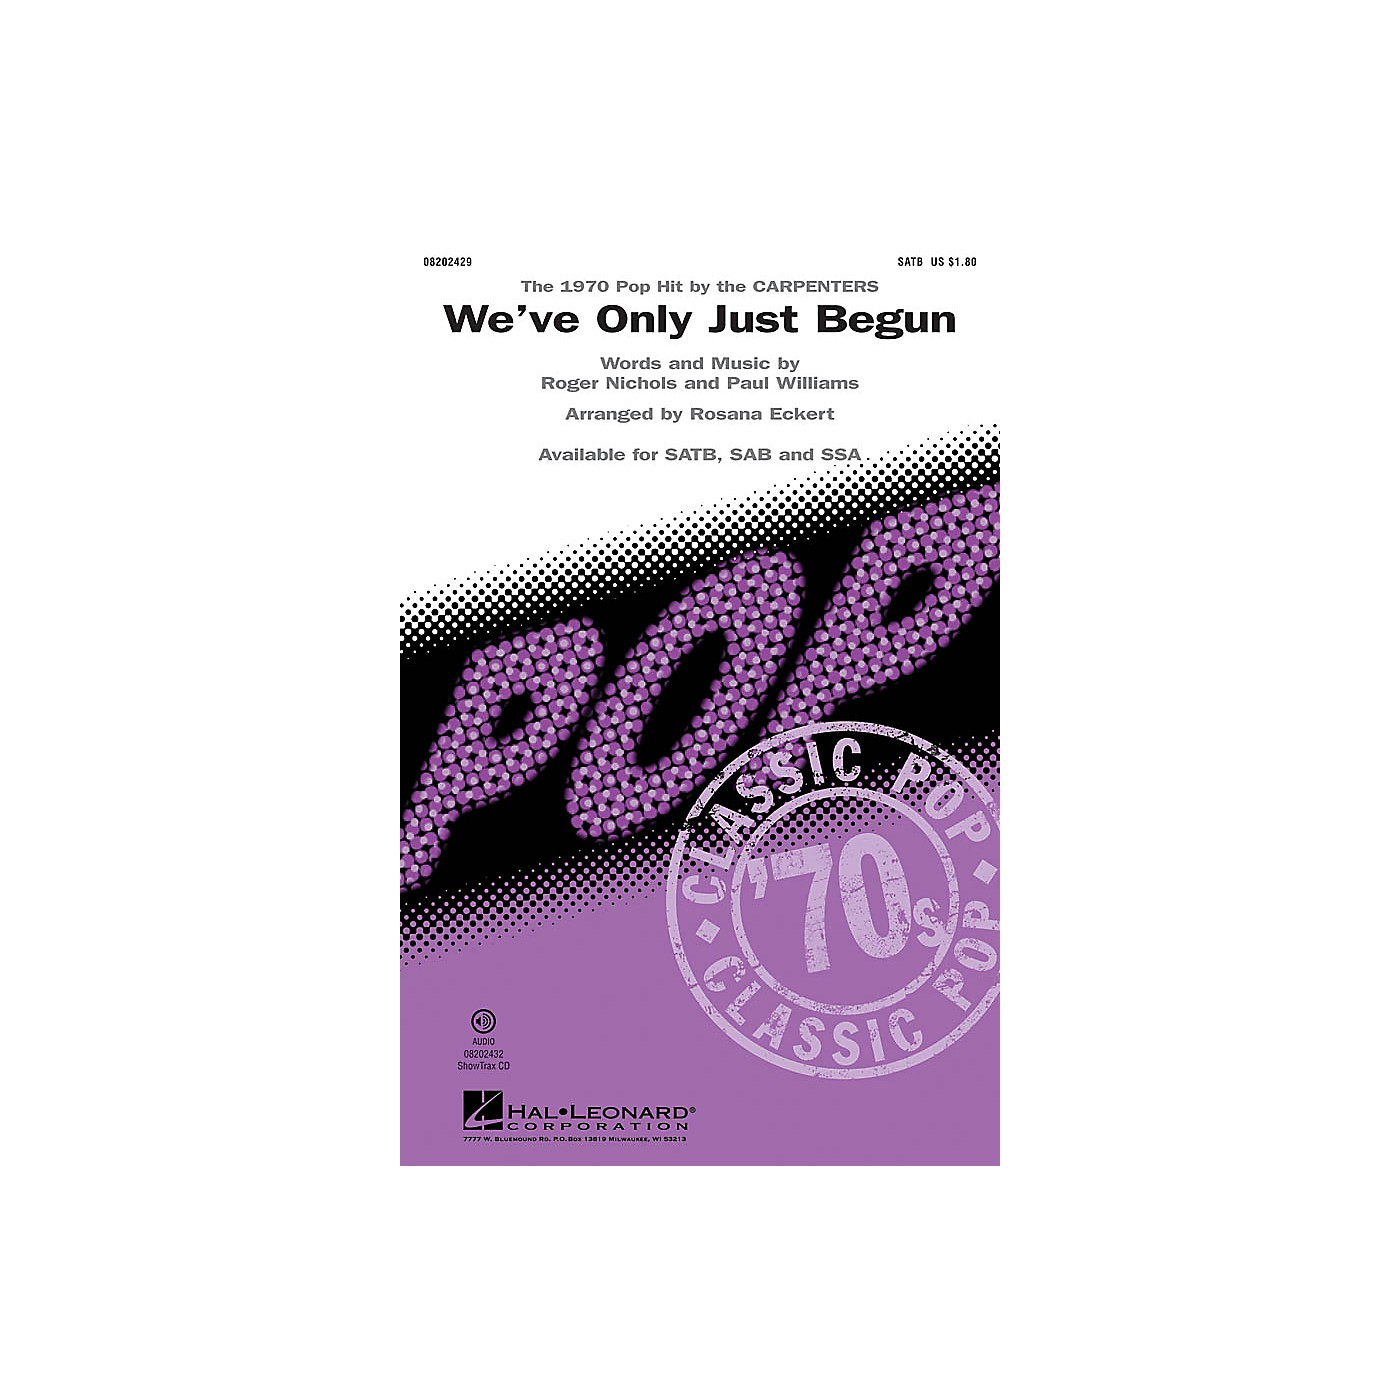 Hal Leonard We've Only Just Begun ShowTrax CD by The Carpenters Arranged by Rosana Eckert thumbnail